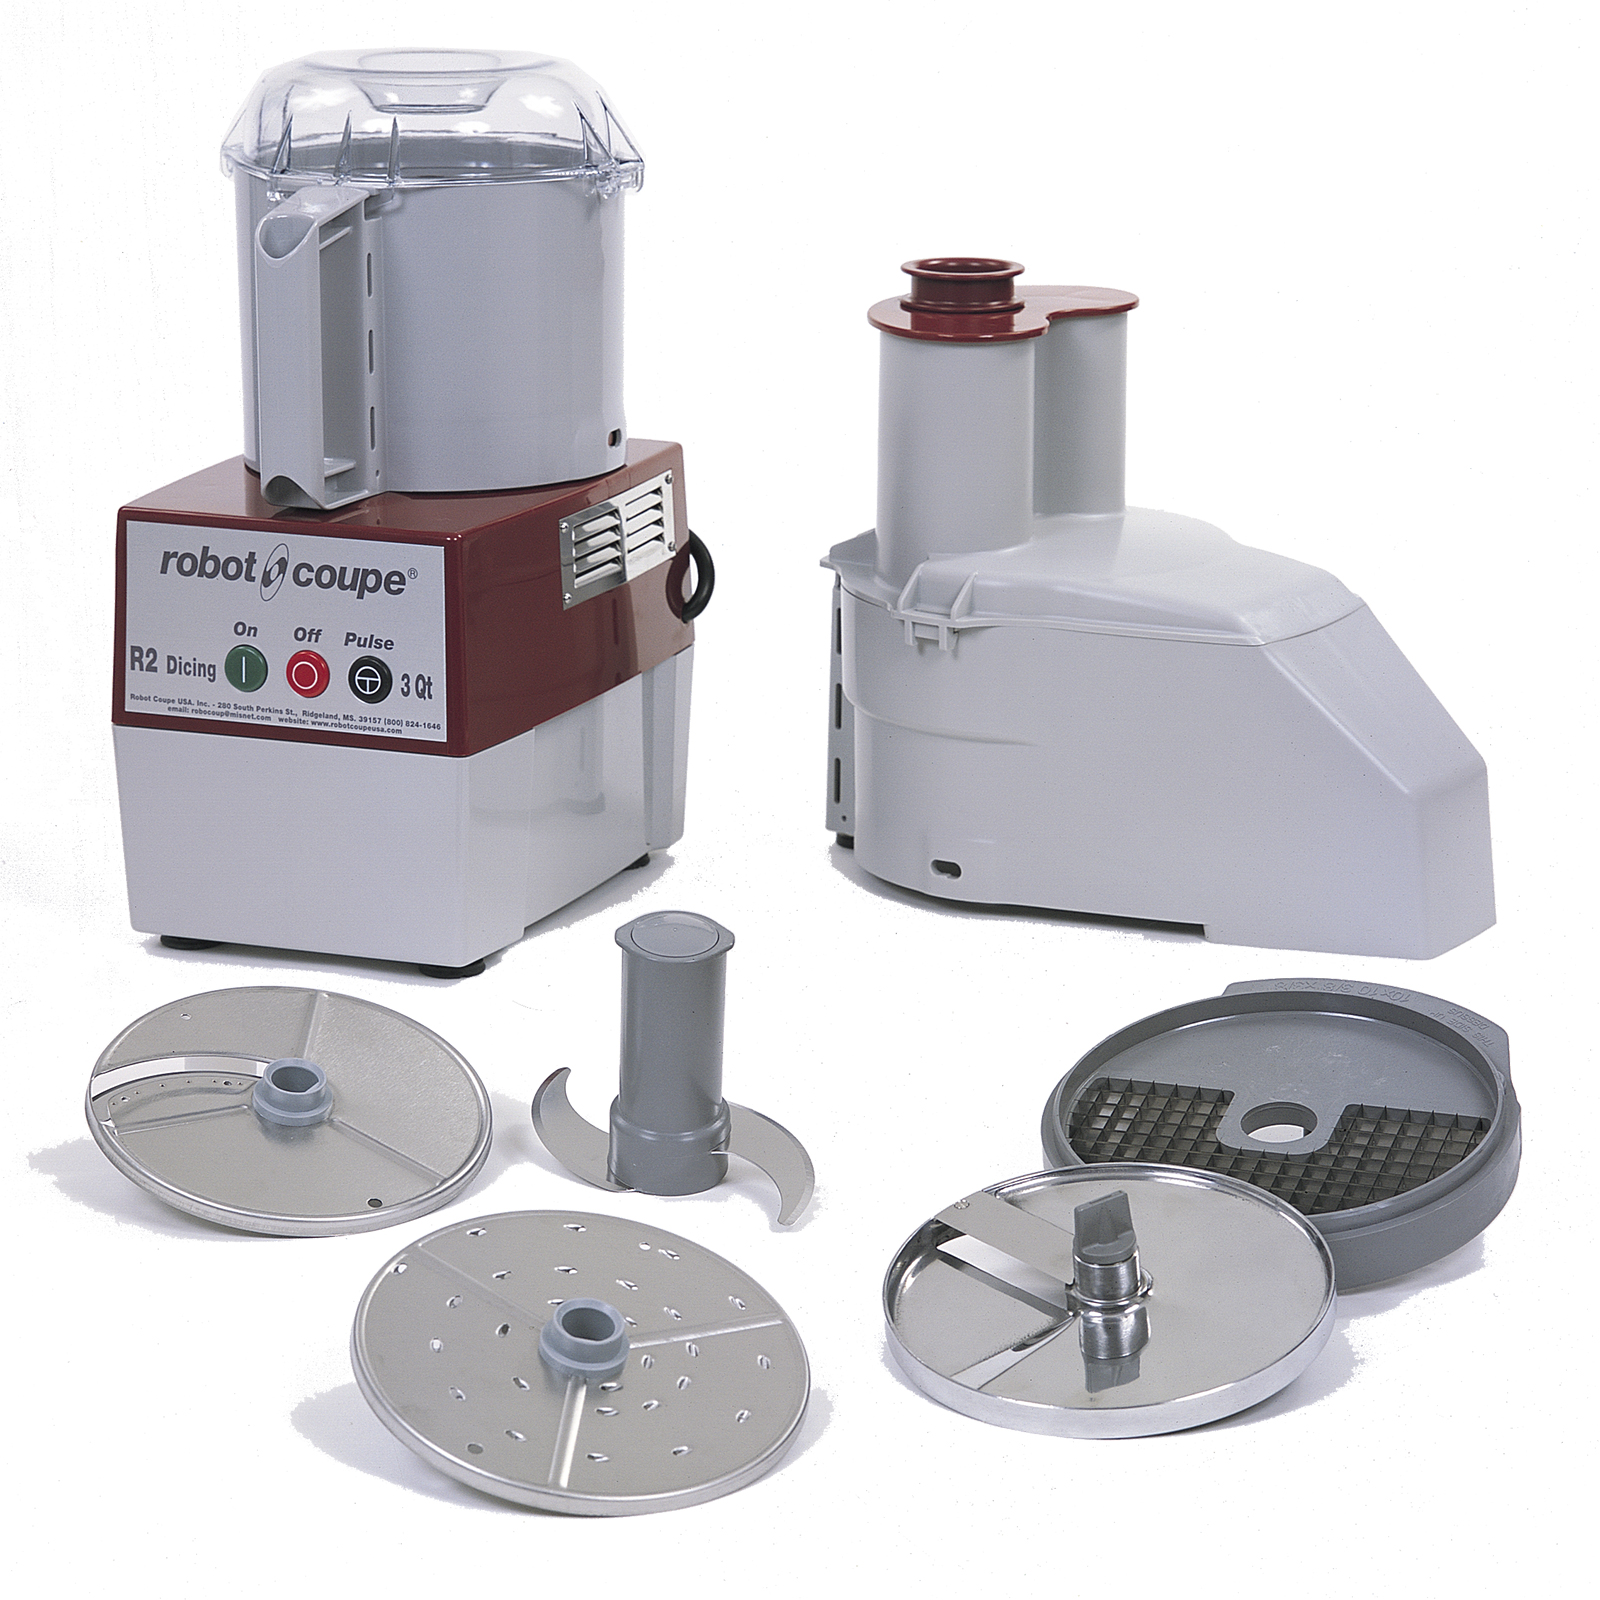 Robot Coupe R2 DICE food processor, benchtop / countertop